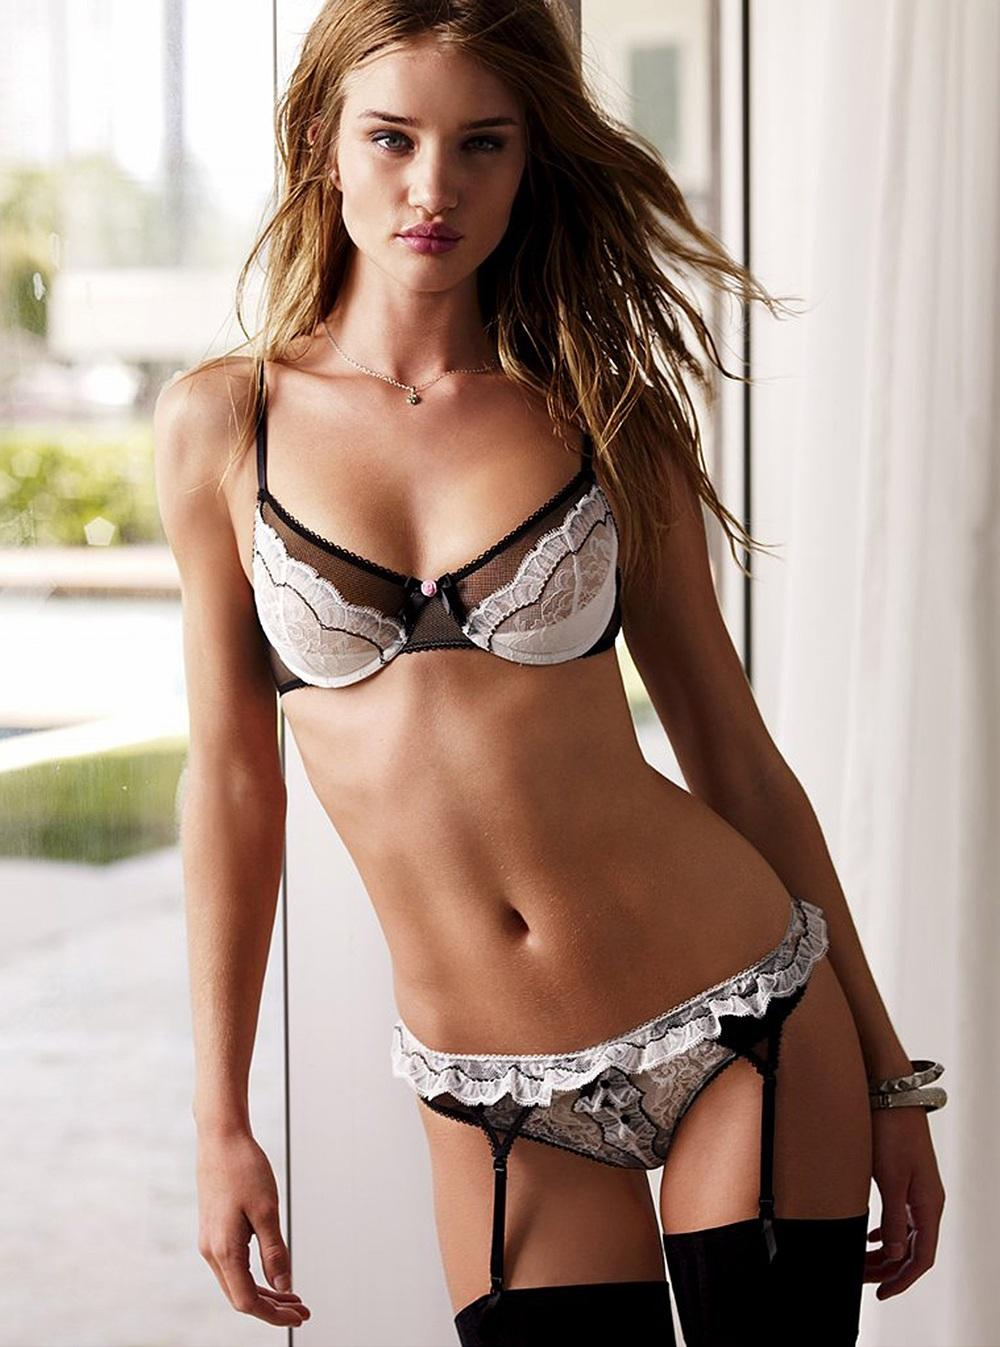 Rosie Huntington Whiteley Sexy November Girl Of The Month Hot